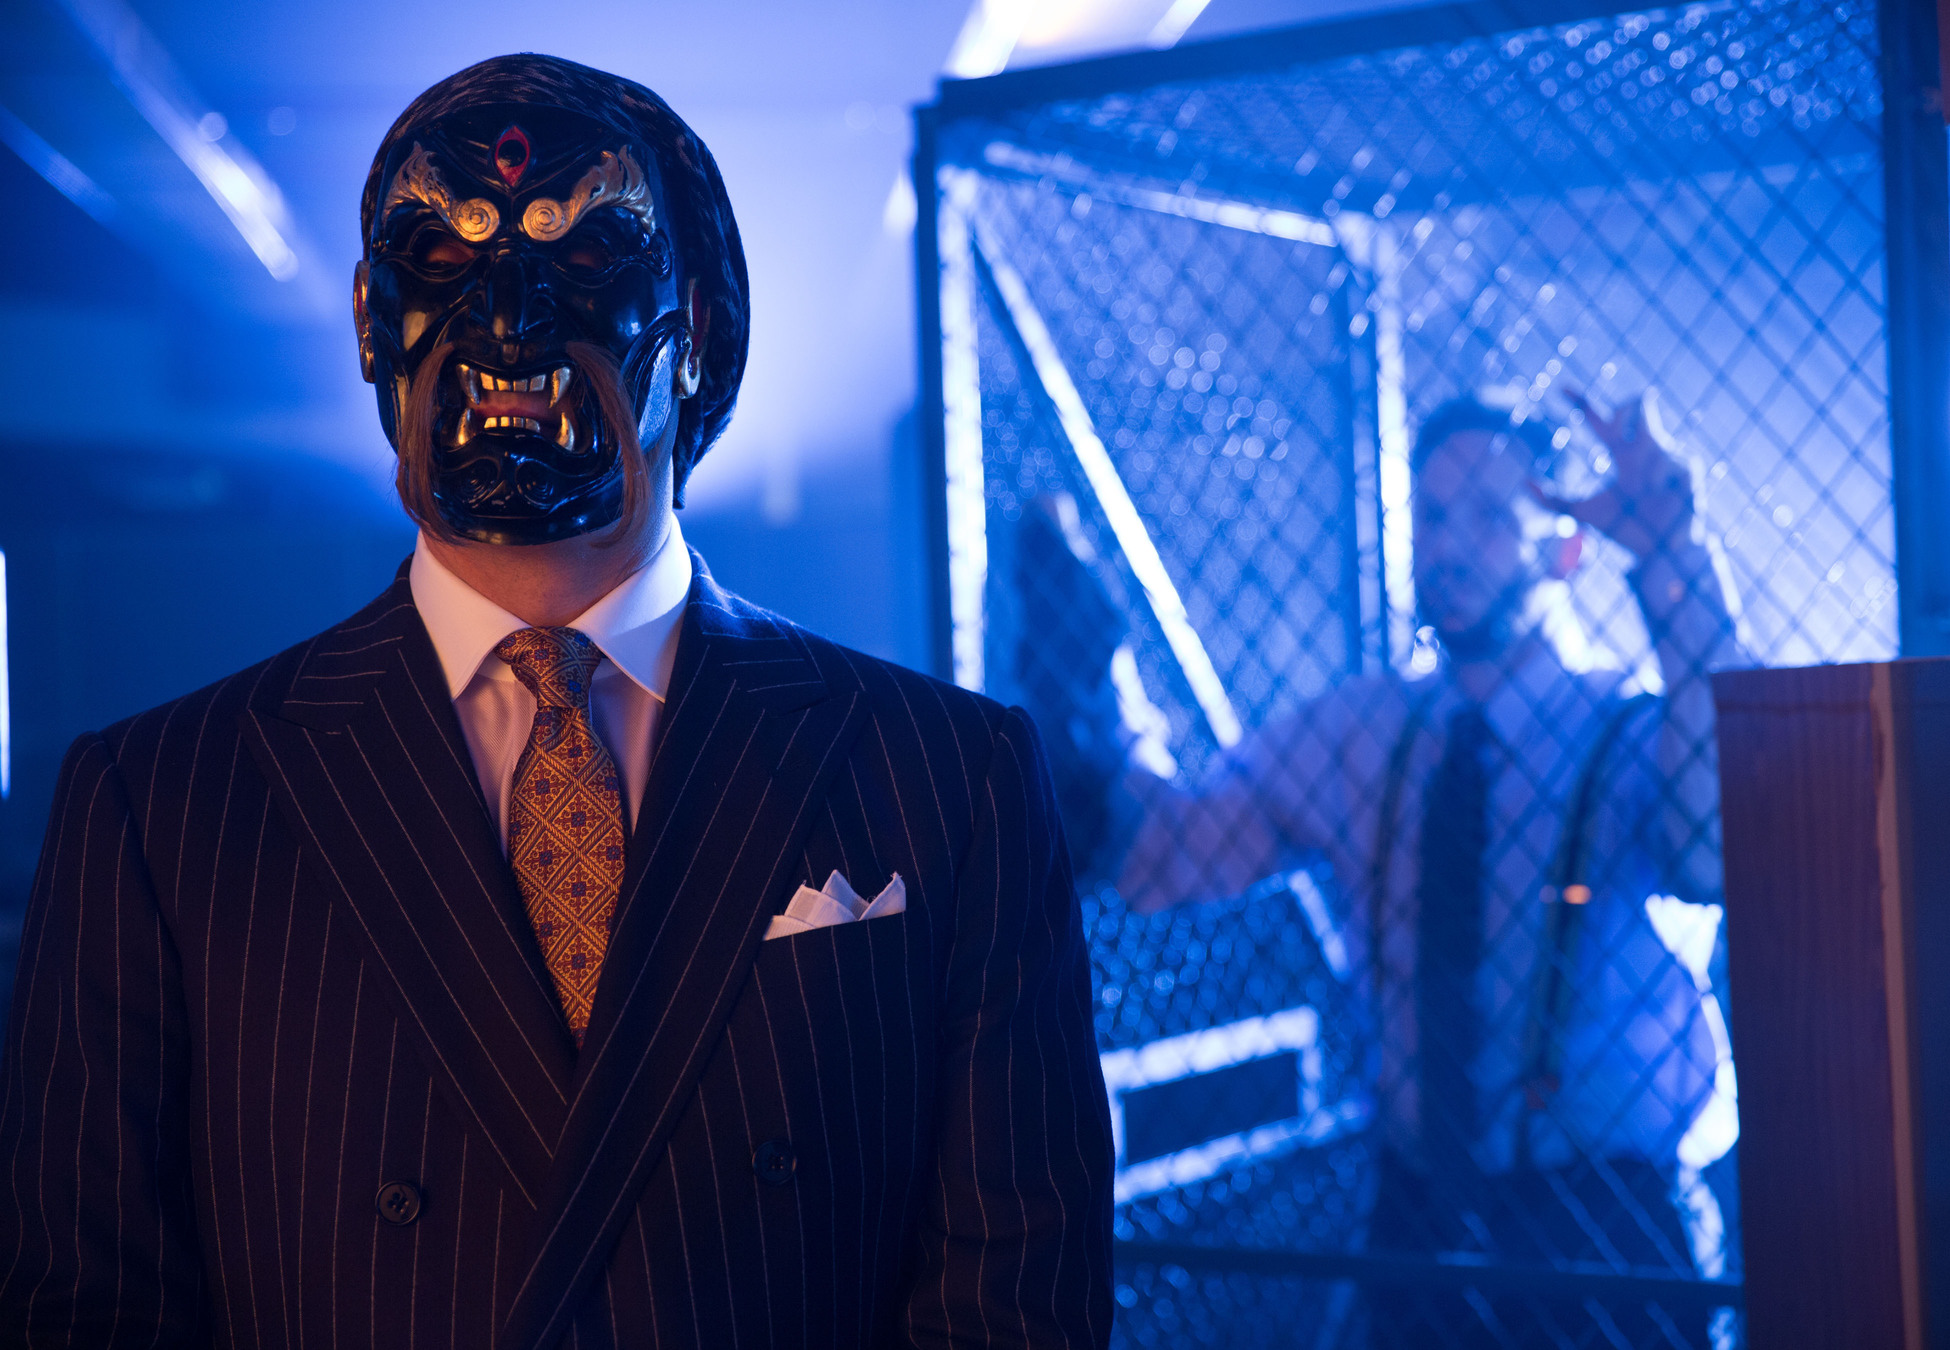 """GOTHAM: Richard Sionis (guest star Todd Stashwick, L) runs a deadly fight club for candidates applying to work at his financial firm in the """"The Mask"""" episode of GOTHAM airing Monday, Nov. 10 (8:00-9:00 PM ET/PT) on FOX. ©2014 Fox Broadcasting Co. Cr: Jessica Miglio/FOX"""